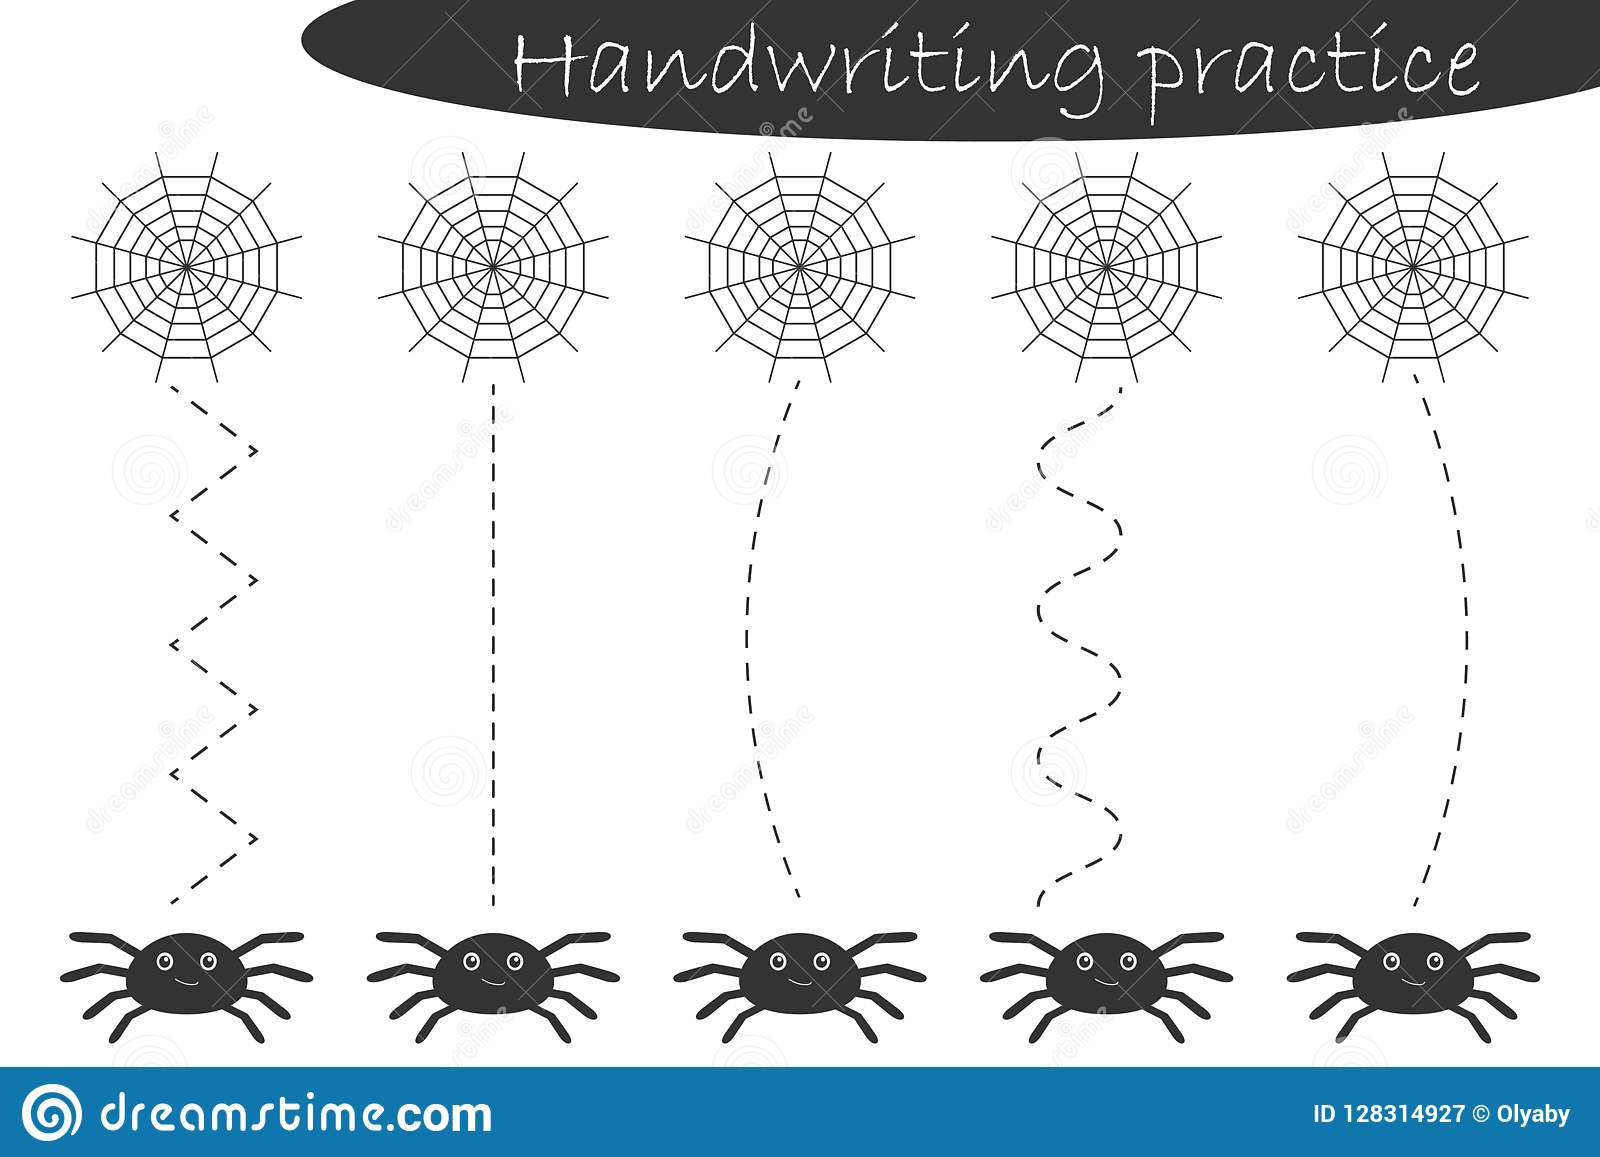 Handwriting Practice Sheet Halloween Theme Cobweb And